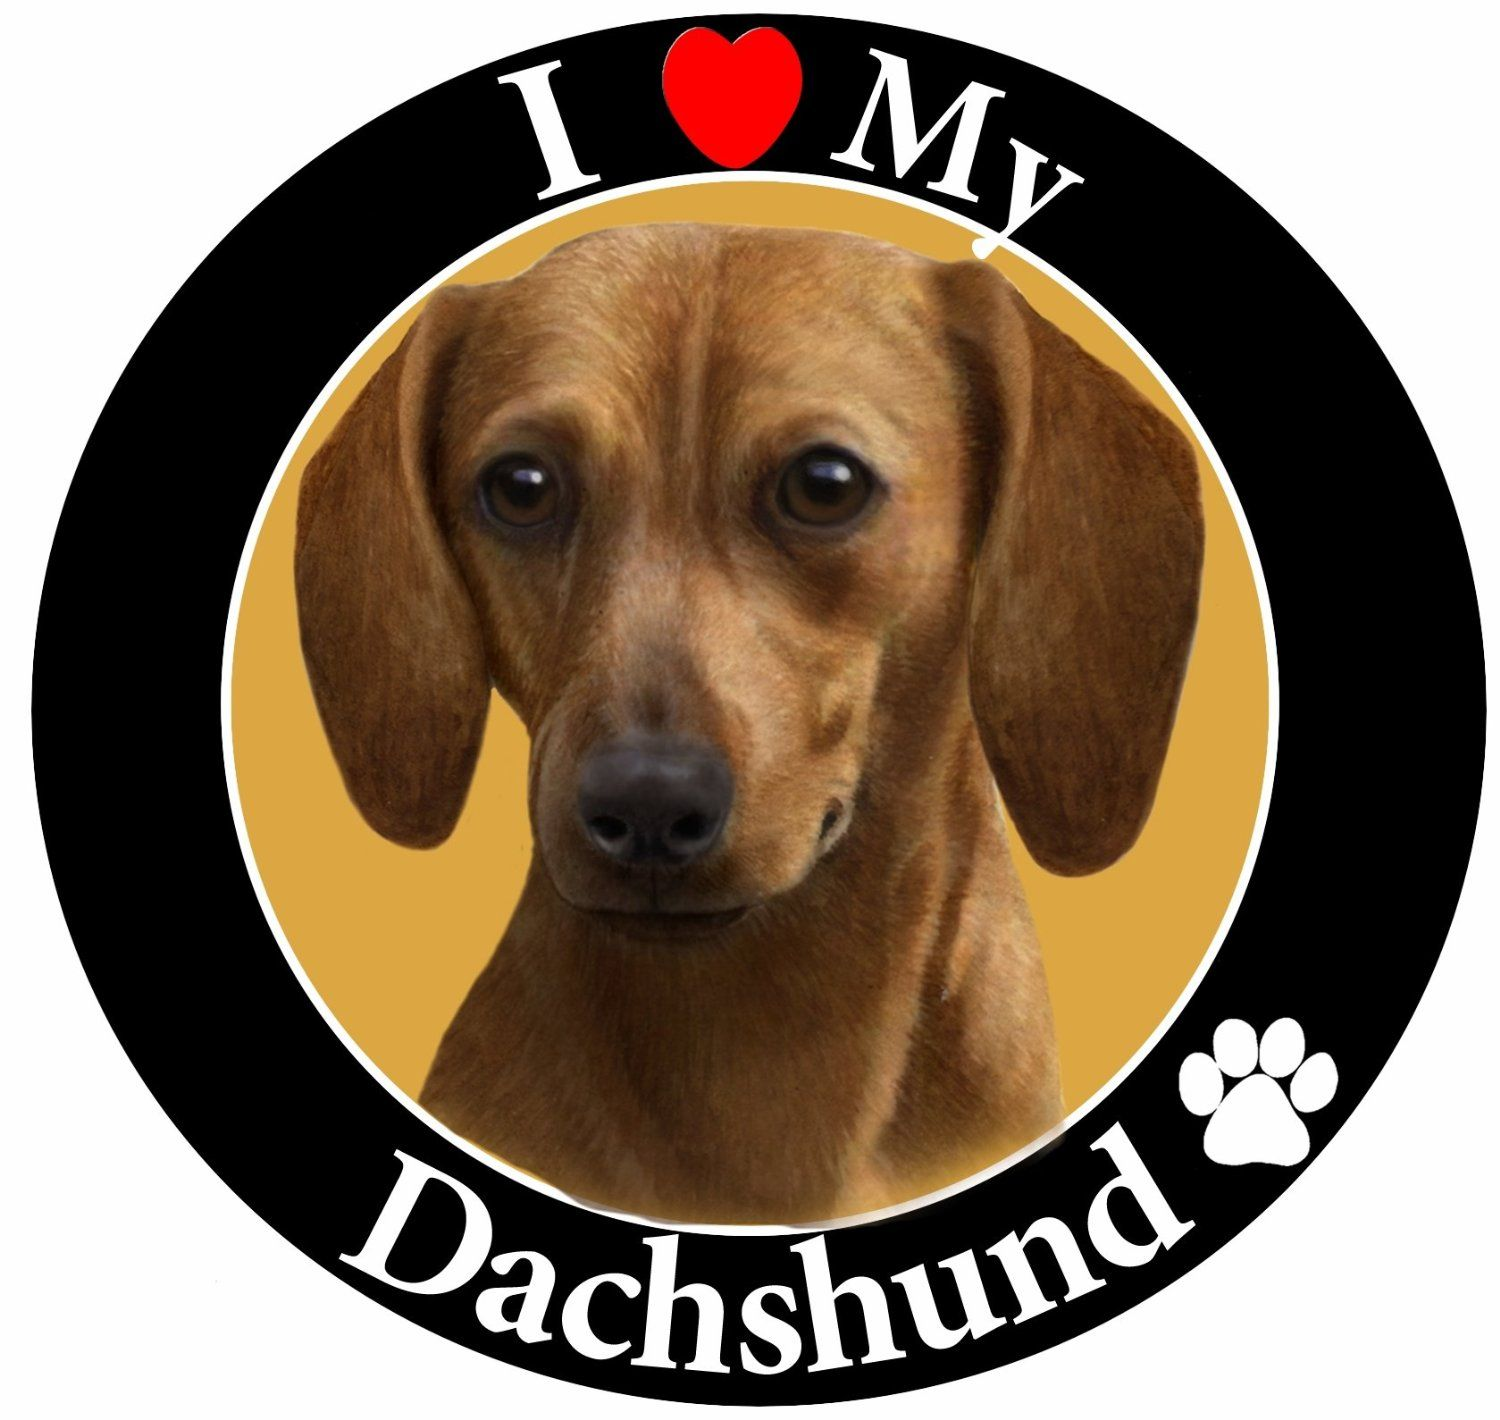 'I Love My Dachshund' Red Car Magnet With Realistic Looking Dachshund Photograph In The Center Covered In High Quality UV Gloss For Weather and Fading Protection Circle Shaped Magnet Measures 5.25 Inches Diameter >>> To view further for this item, visit the image link.